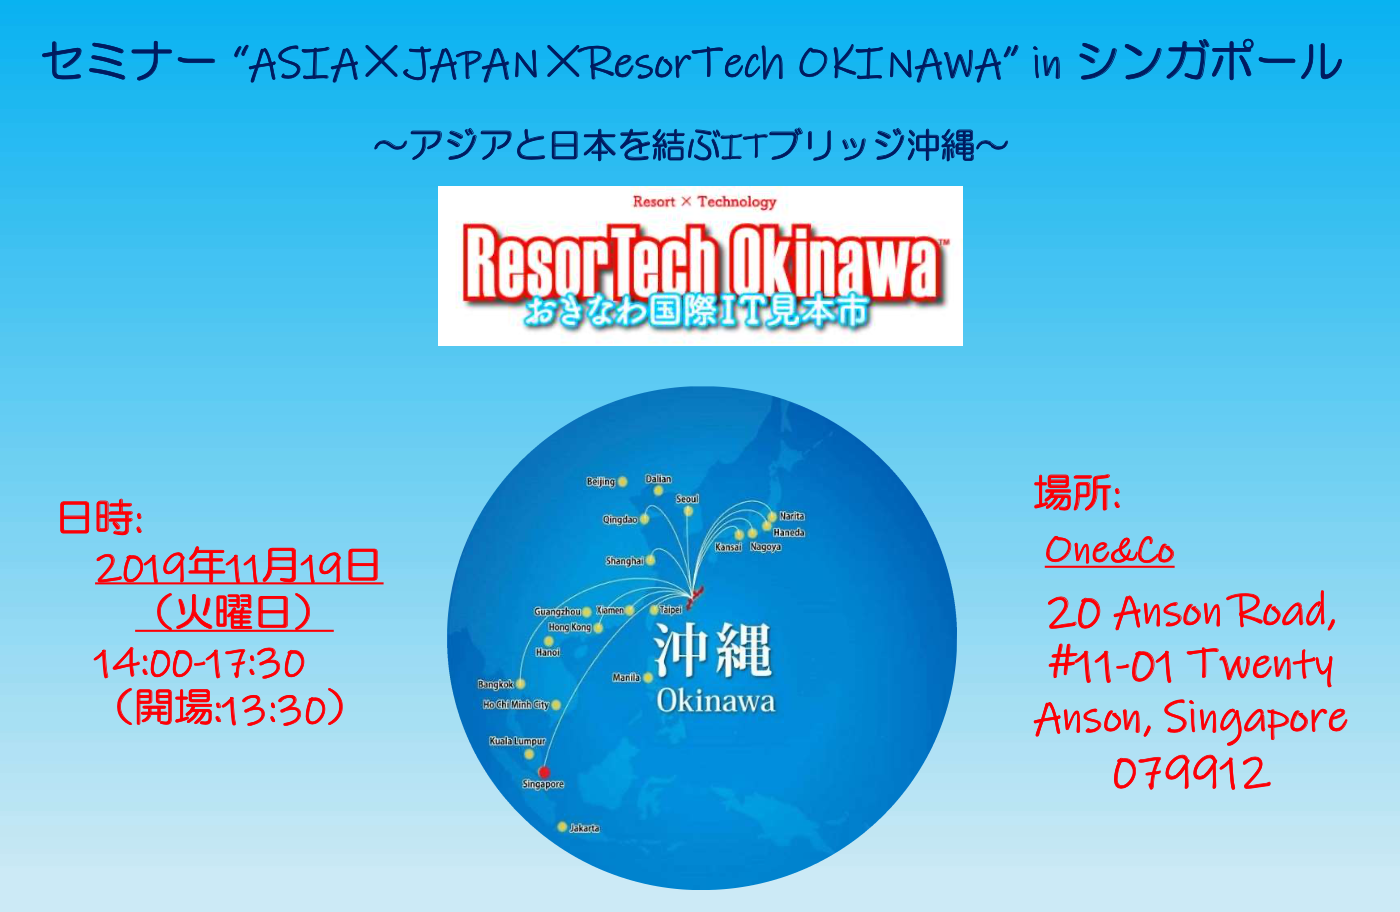 """ASIA×JAPAN×ResorTech OKINAWA"" in シンガポール"